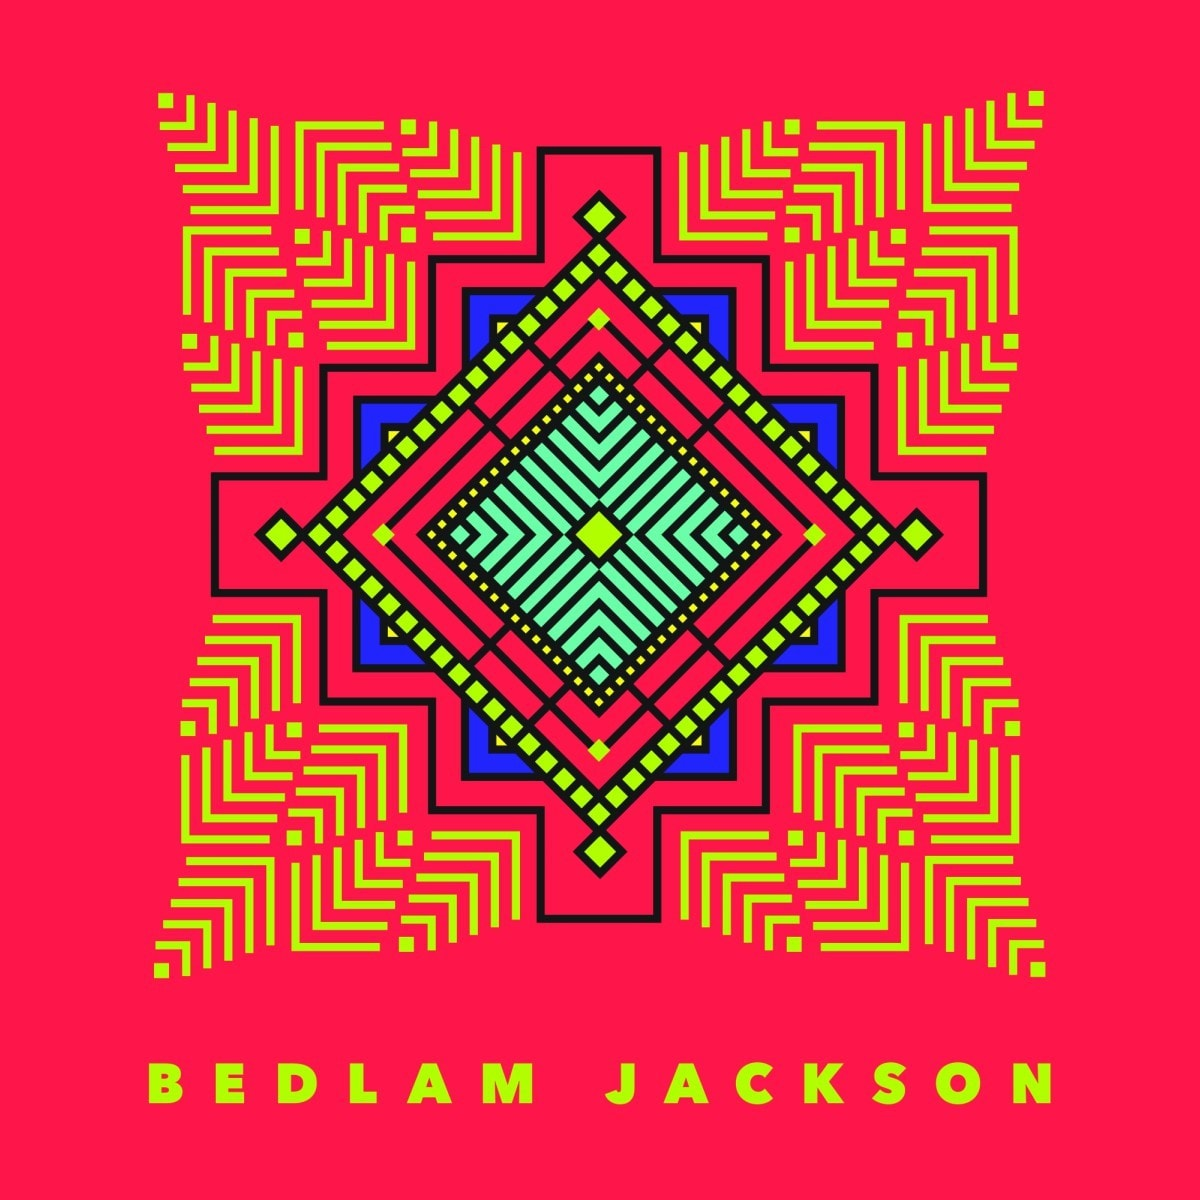 The cover art for Bedlam Jackson, Taurees' solo music project